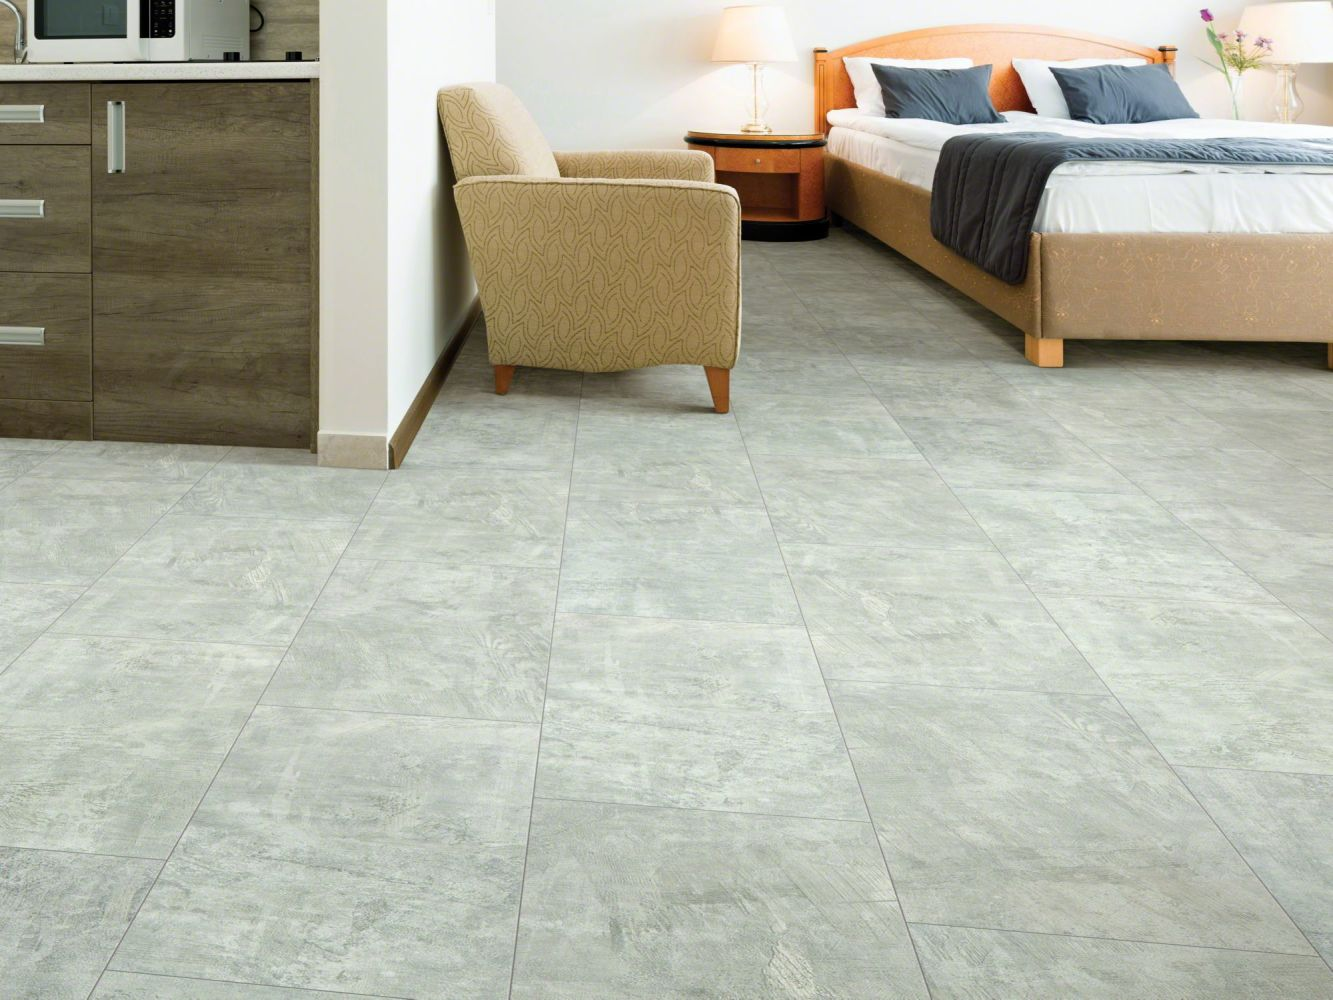 Shaw Floors Vinyl Residential Mineral Mix 720c Plus Graphite 05001_0835V